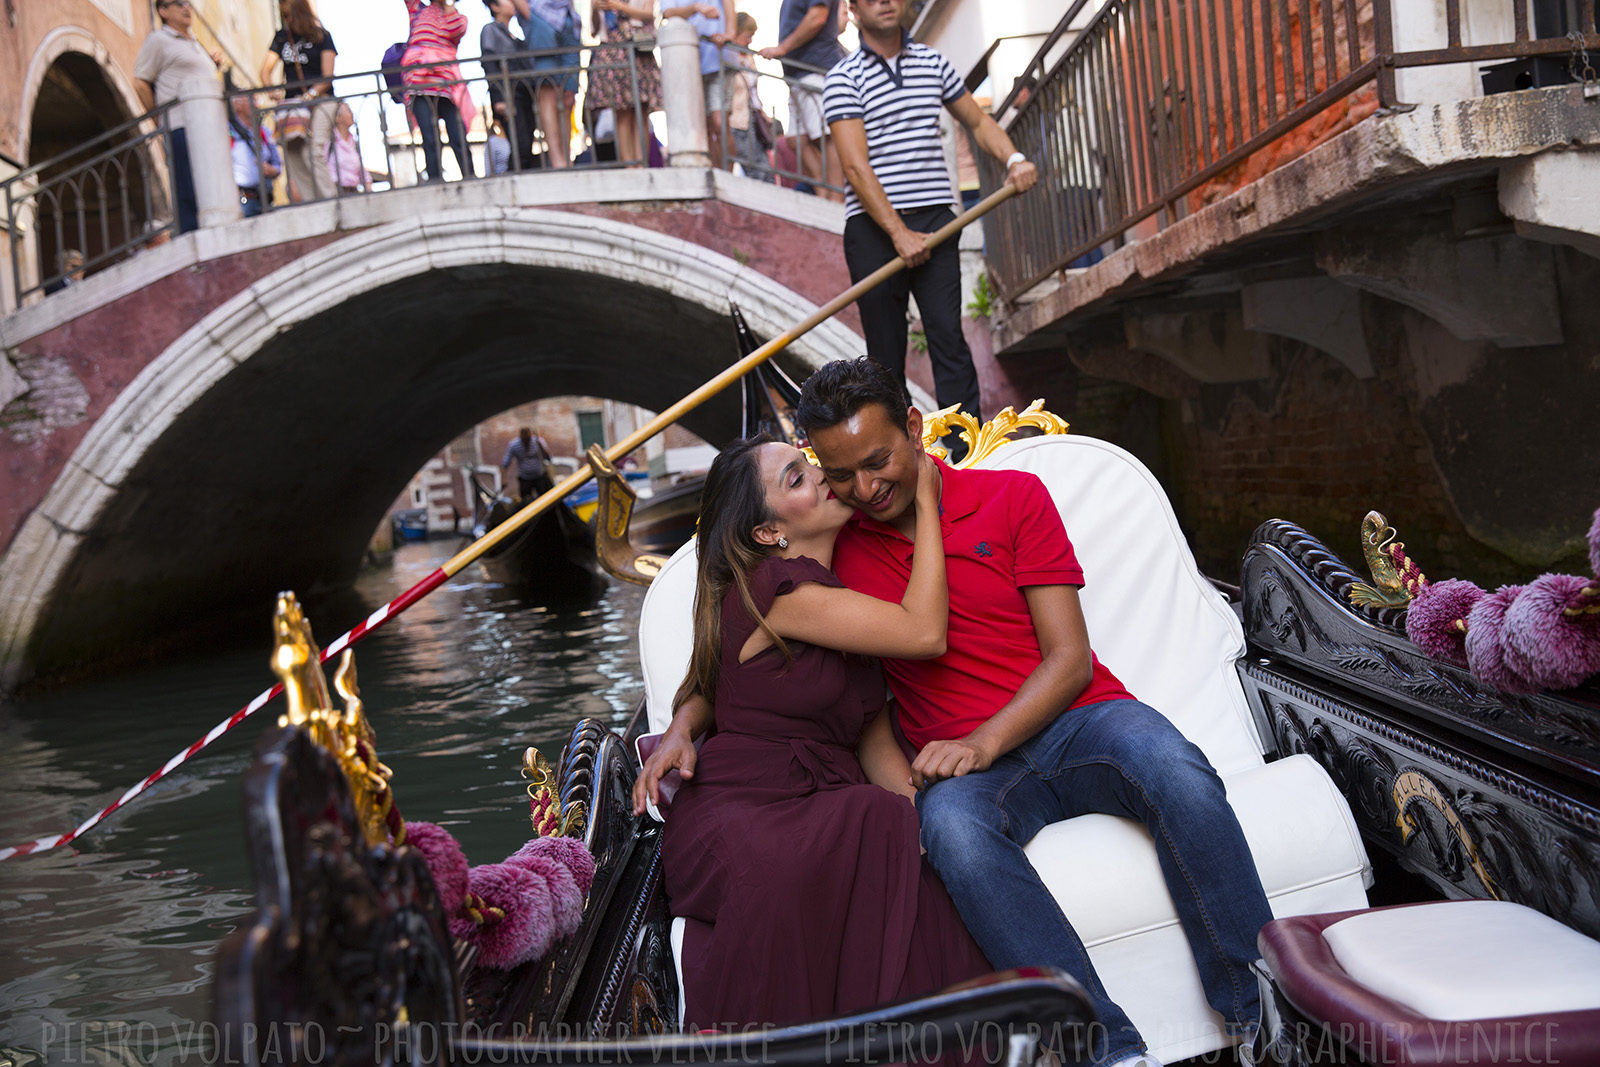 Venice photographer for vacation photo shoot and tour ~ Couple romantic and fun photos ~ Venice photo walk and gondola ride